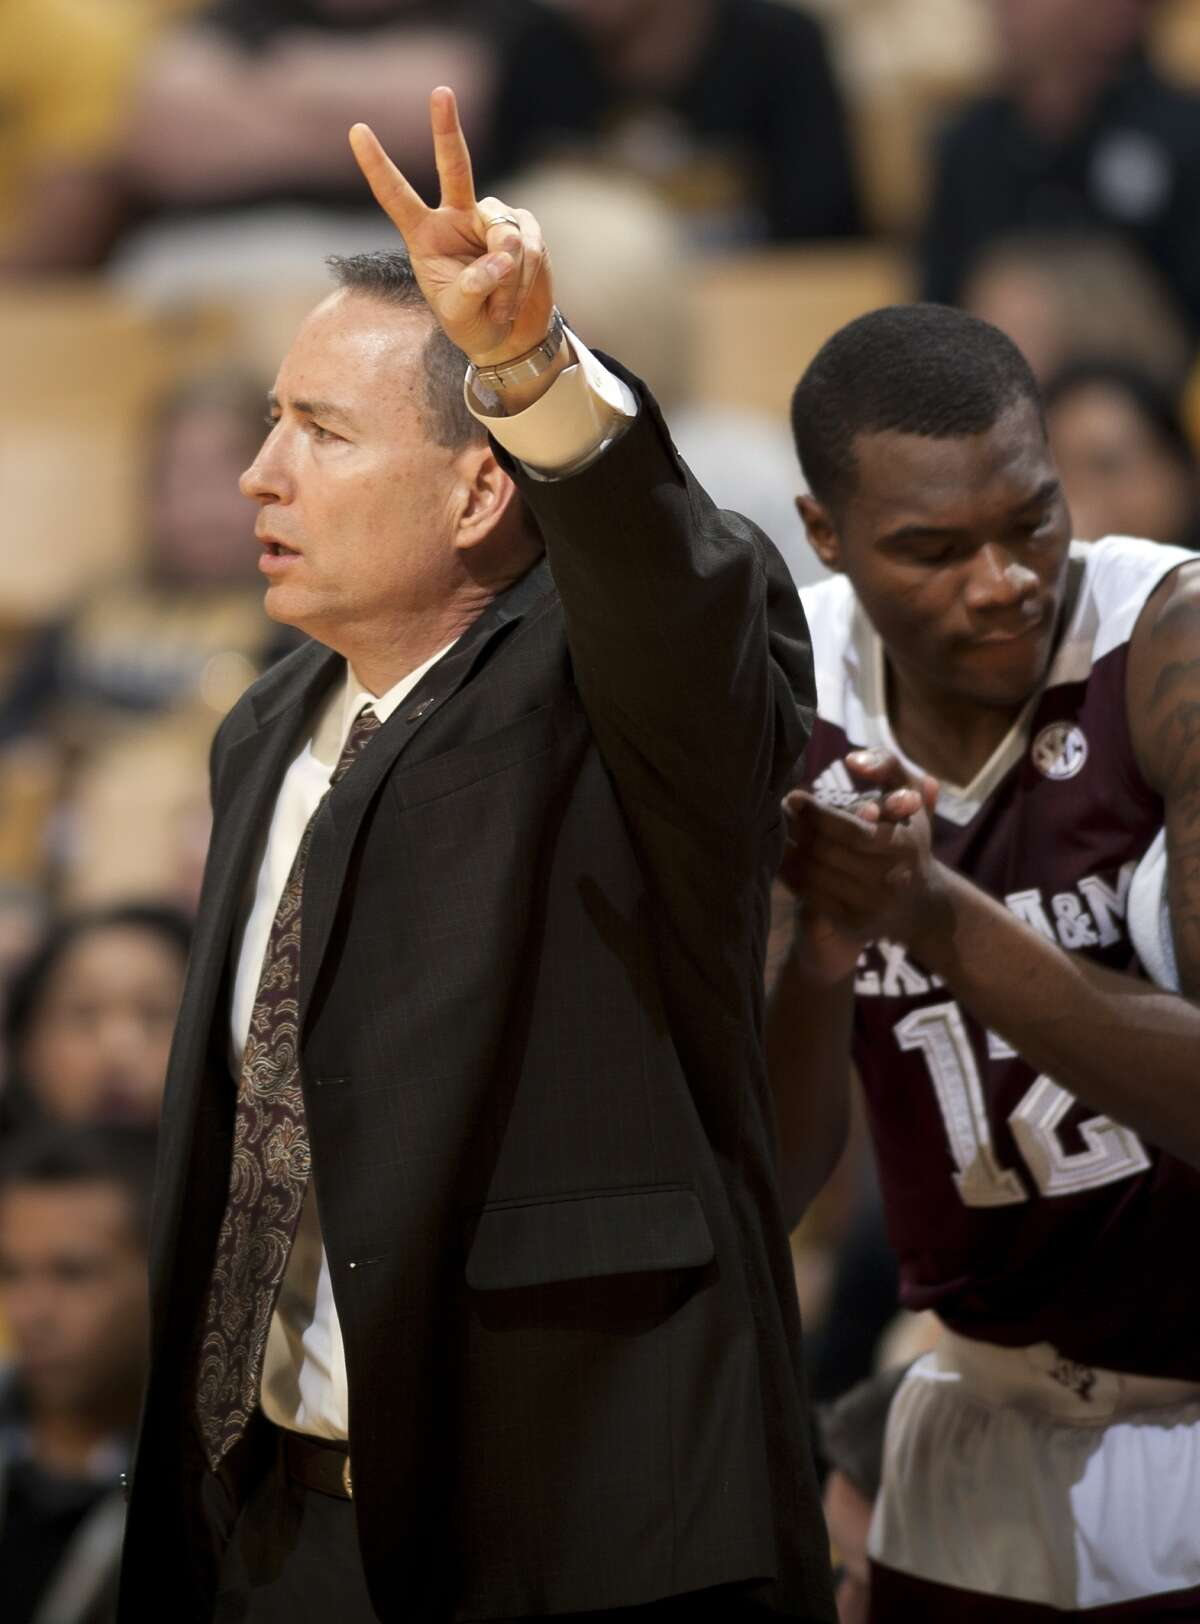 Texas A&M head coach Billy Kennedy, left, gestures from the bench alongside Jalen Jones during the first half of an NCAA college basketball game against Missouri, Saturday, Feb. 27, 2016, in Columbia, Mo. (Nick Schnelle/Columbia Daily Tribune via AP)